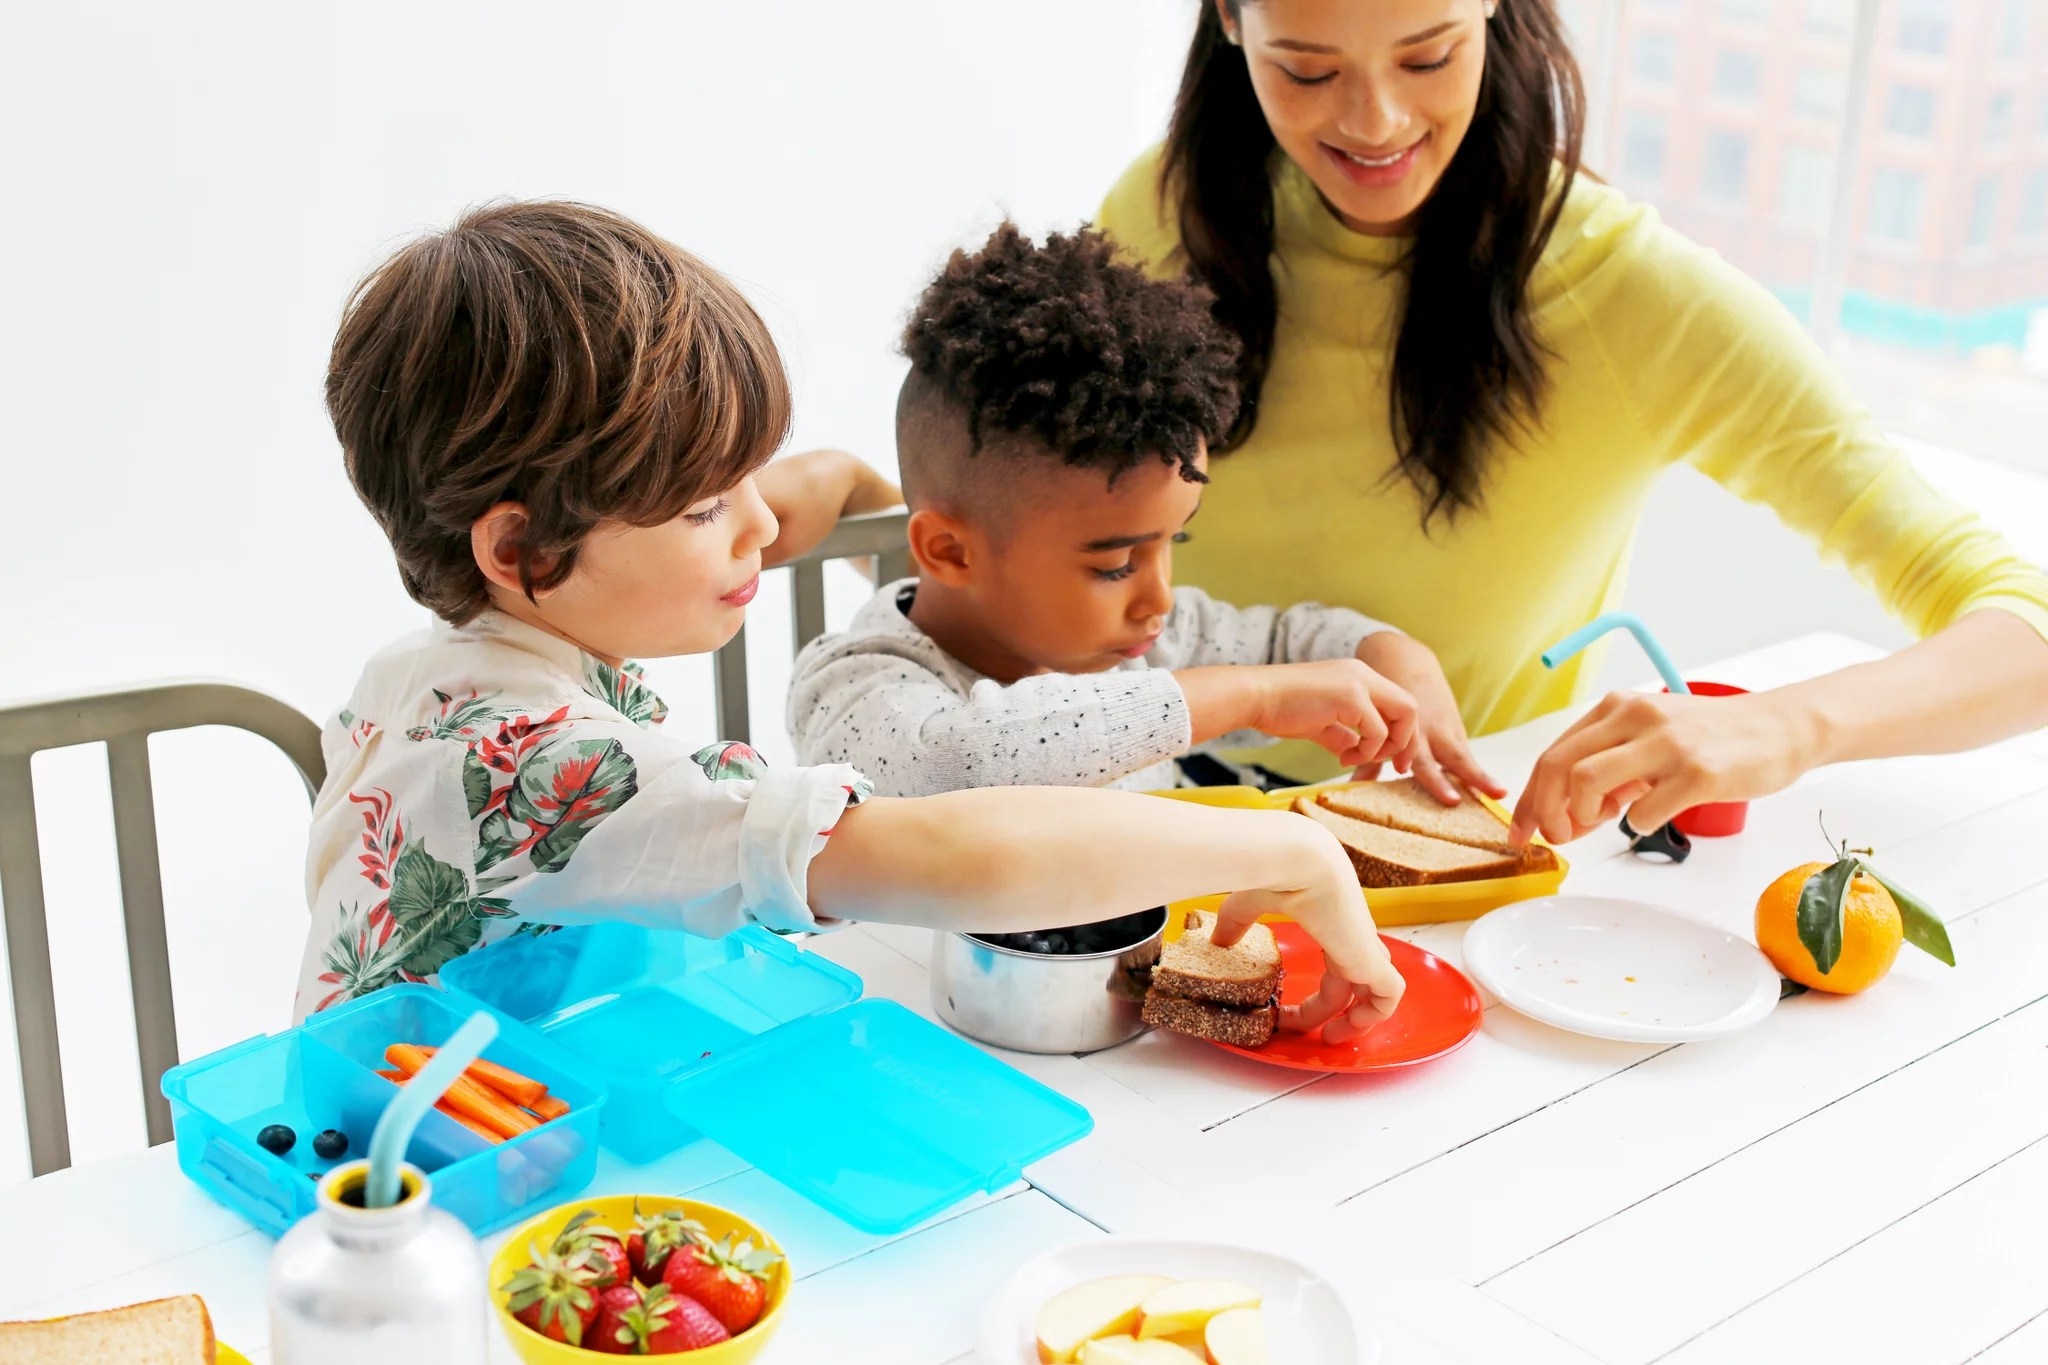 Weight Loss Tips You Can Learn From Kids